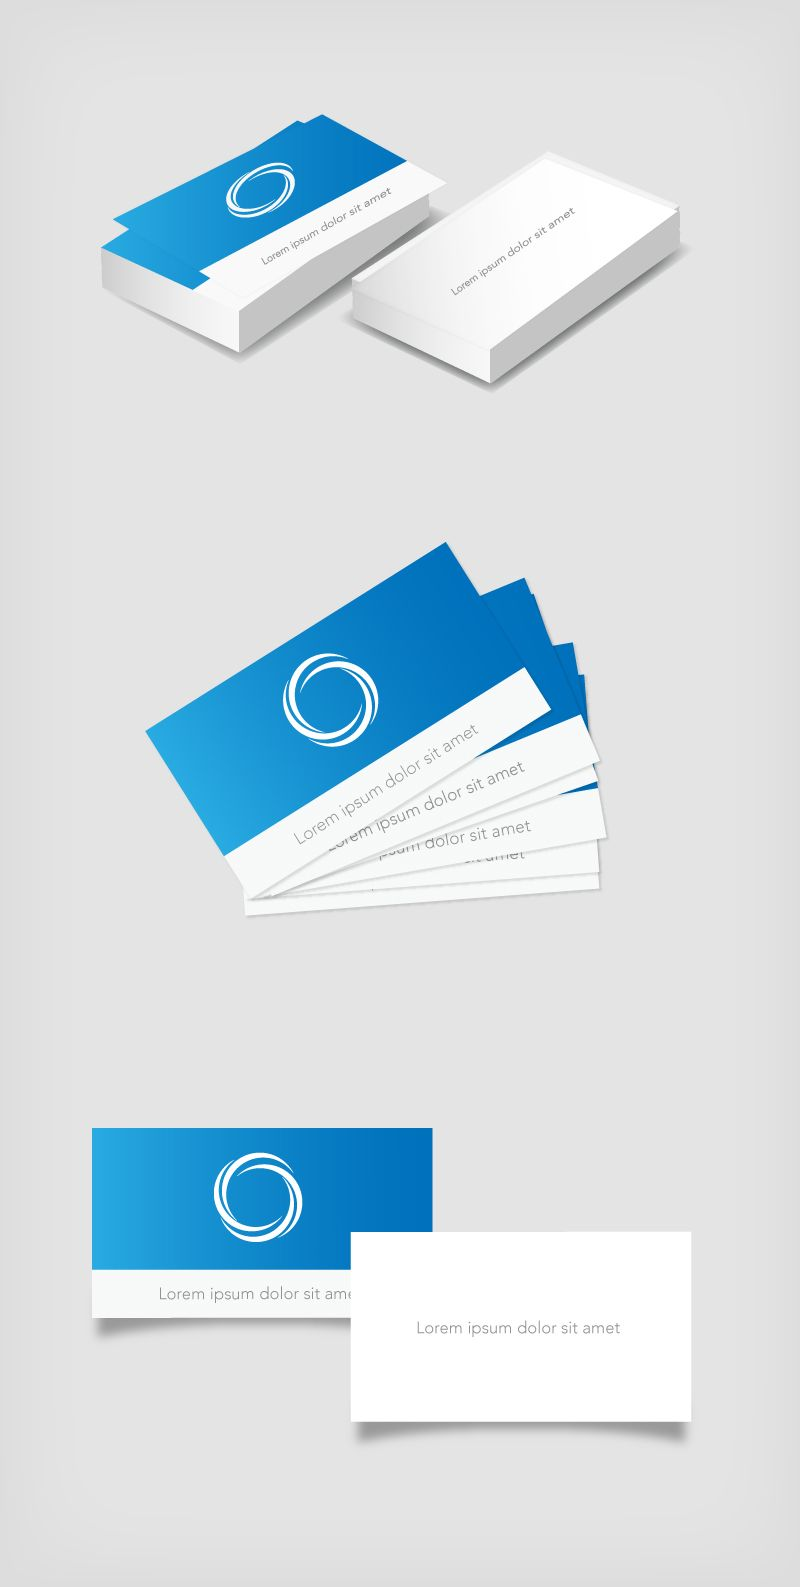 Classic Business Card Mockup - Vector download